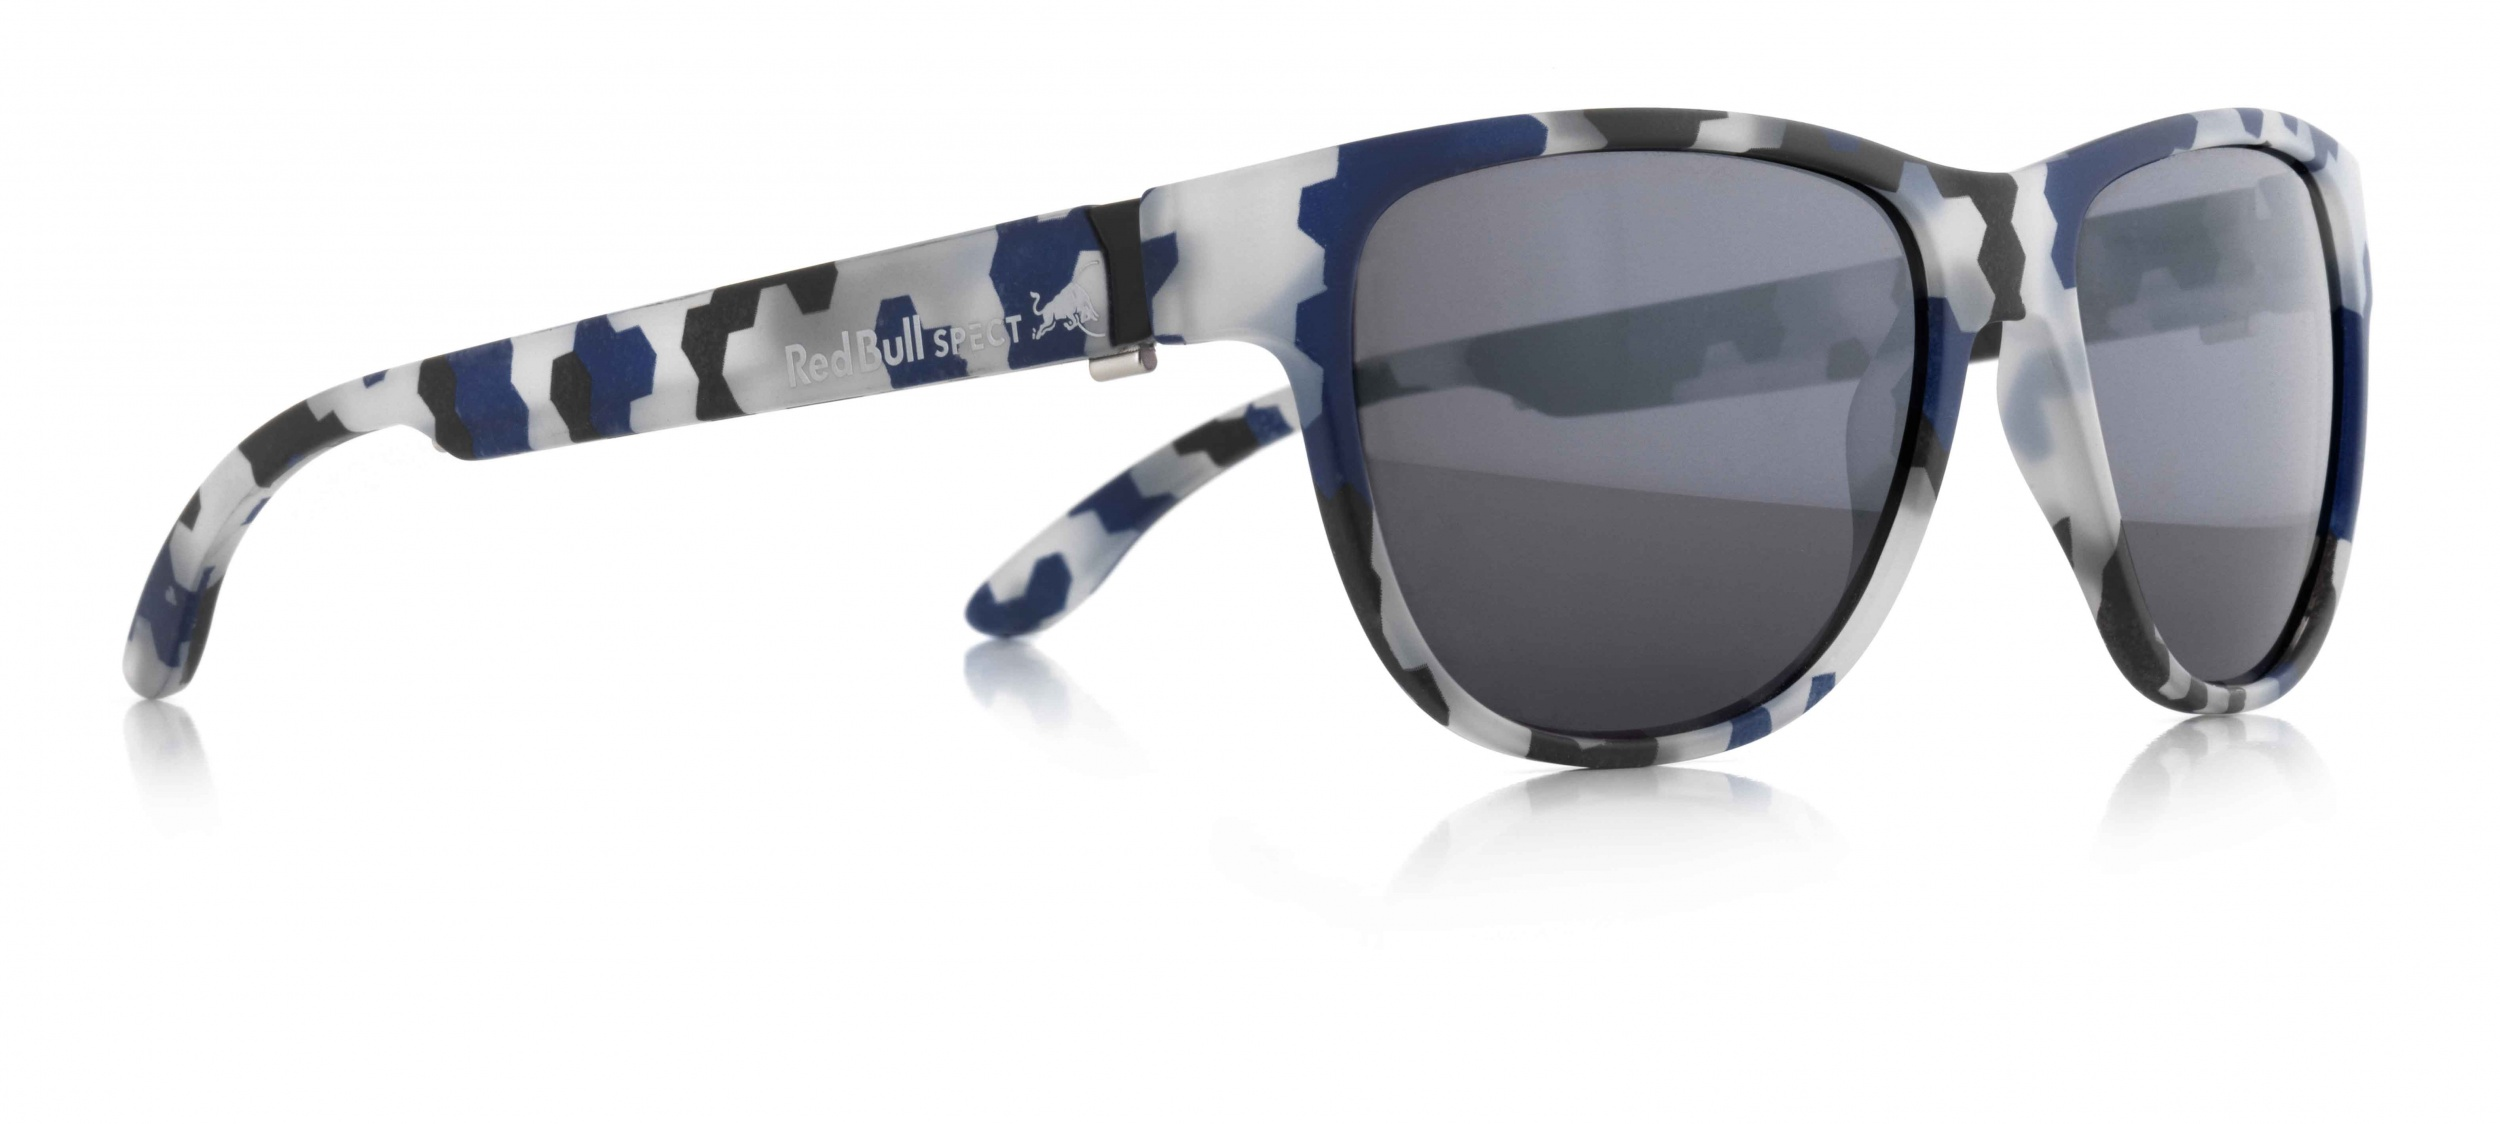 66e0689aab1d Red Bull Spect Eyewear sports sunglasses Wing3 blue camouflage (005PN).  Enlarge